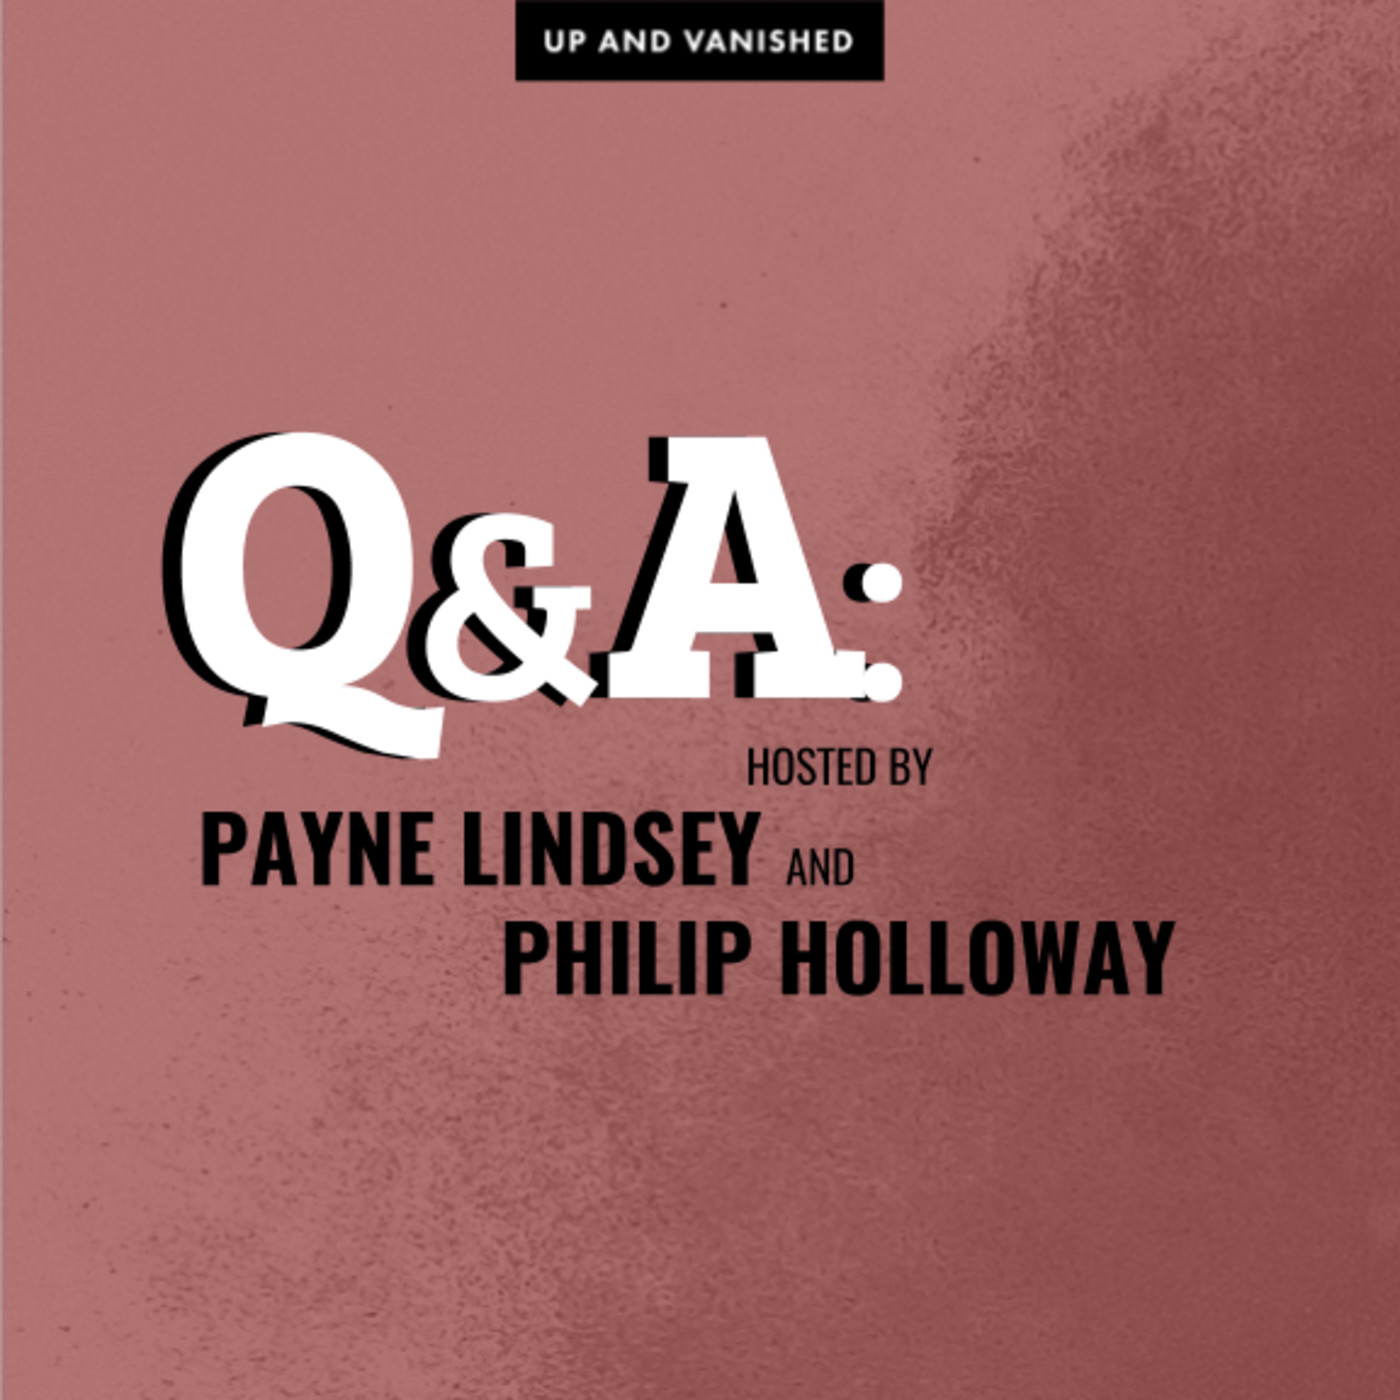 S1E : Q&A with Payne Lindsey and Philip Holloway 03.17.17